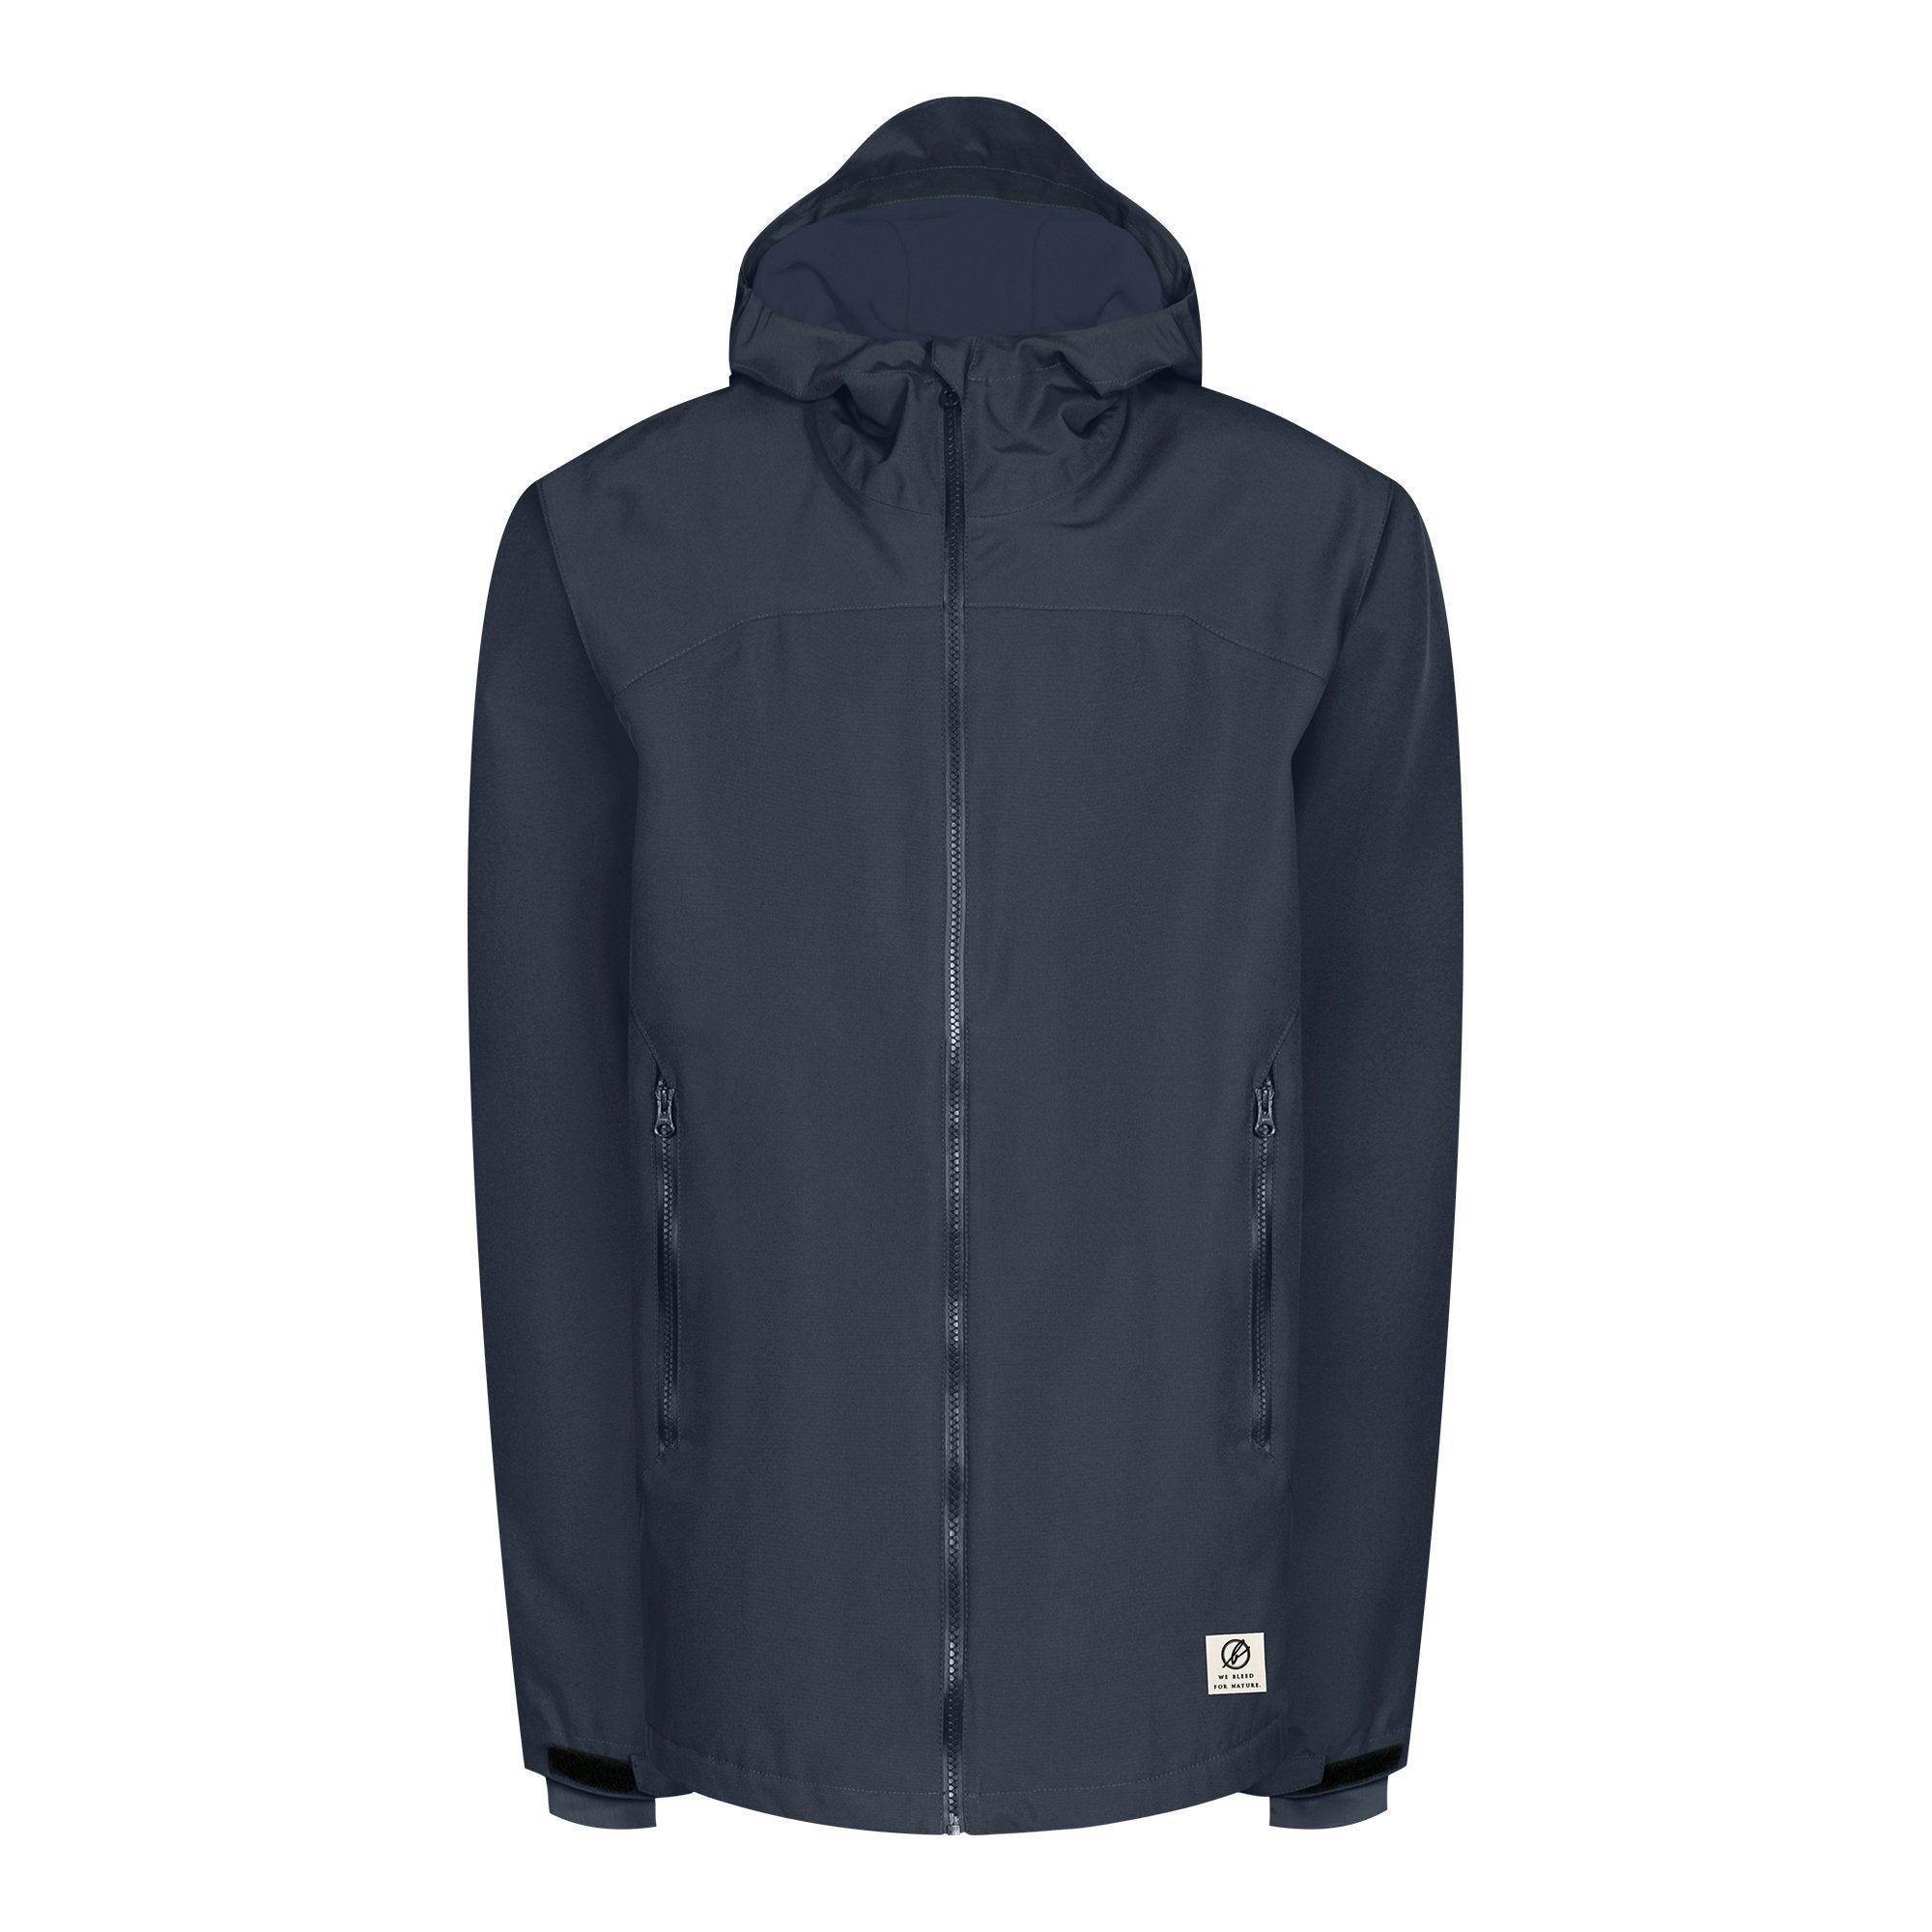 Sympatex® Thermal Jacket - Navy - Herr - Vindpinad